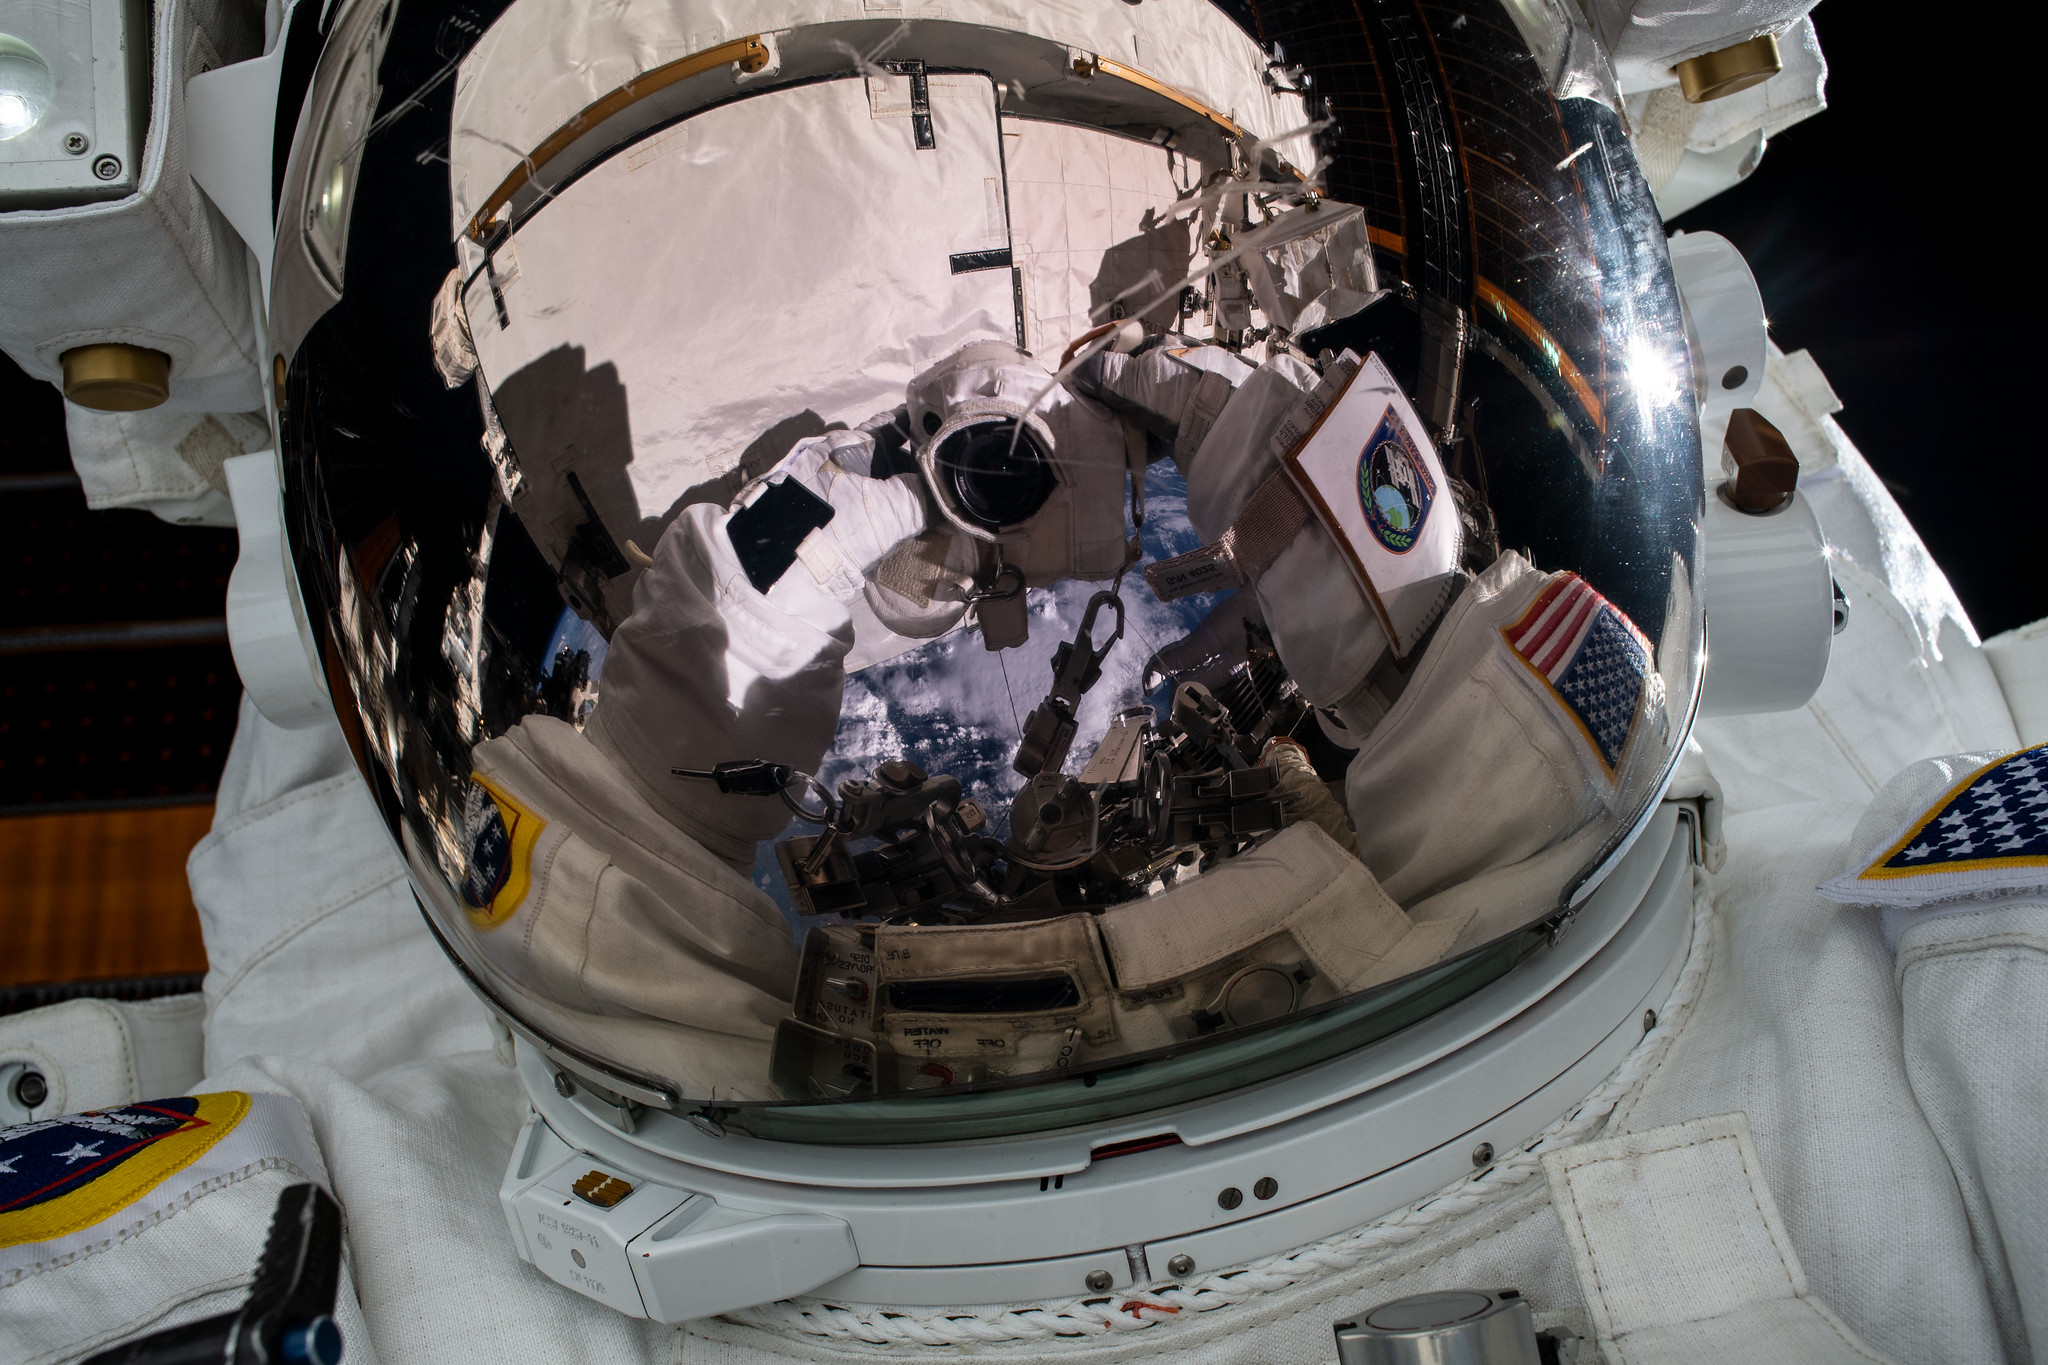 https://www.nasa.gov/sites/default/files/thumbnails/image/49396226587_354319ef79_k.jpg